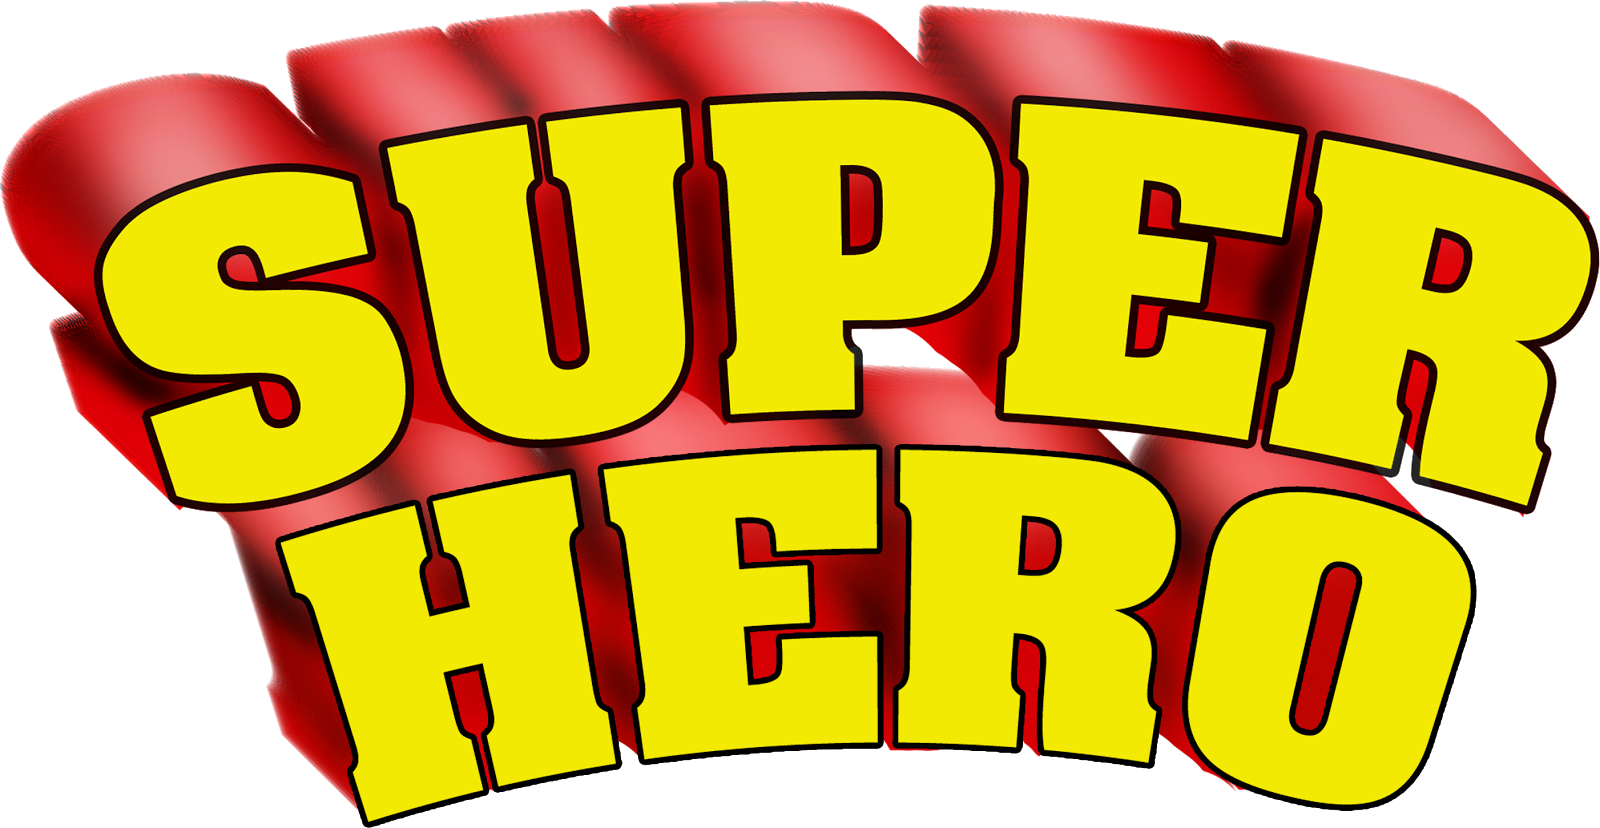 Hero clipart word bubble, Hero word bubble Transparent FREE.